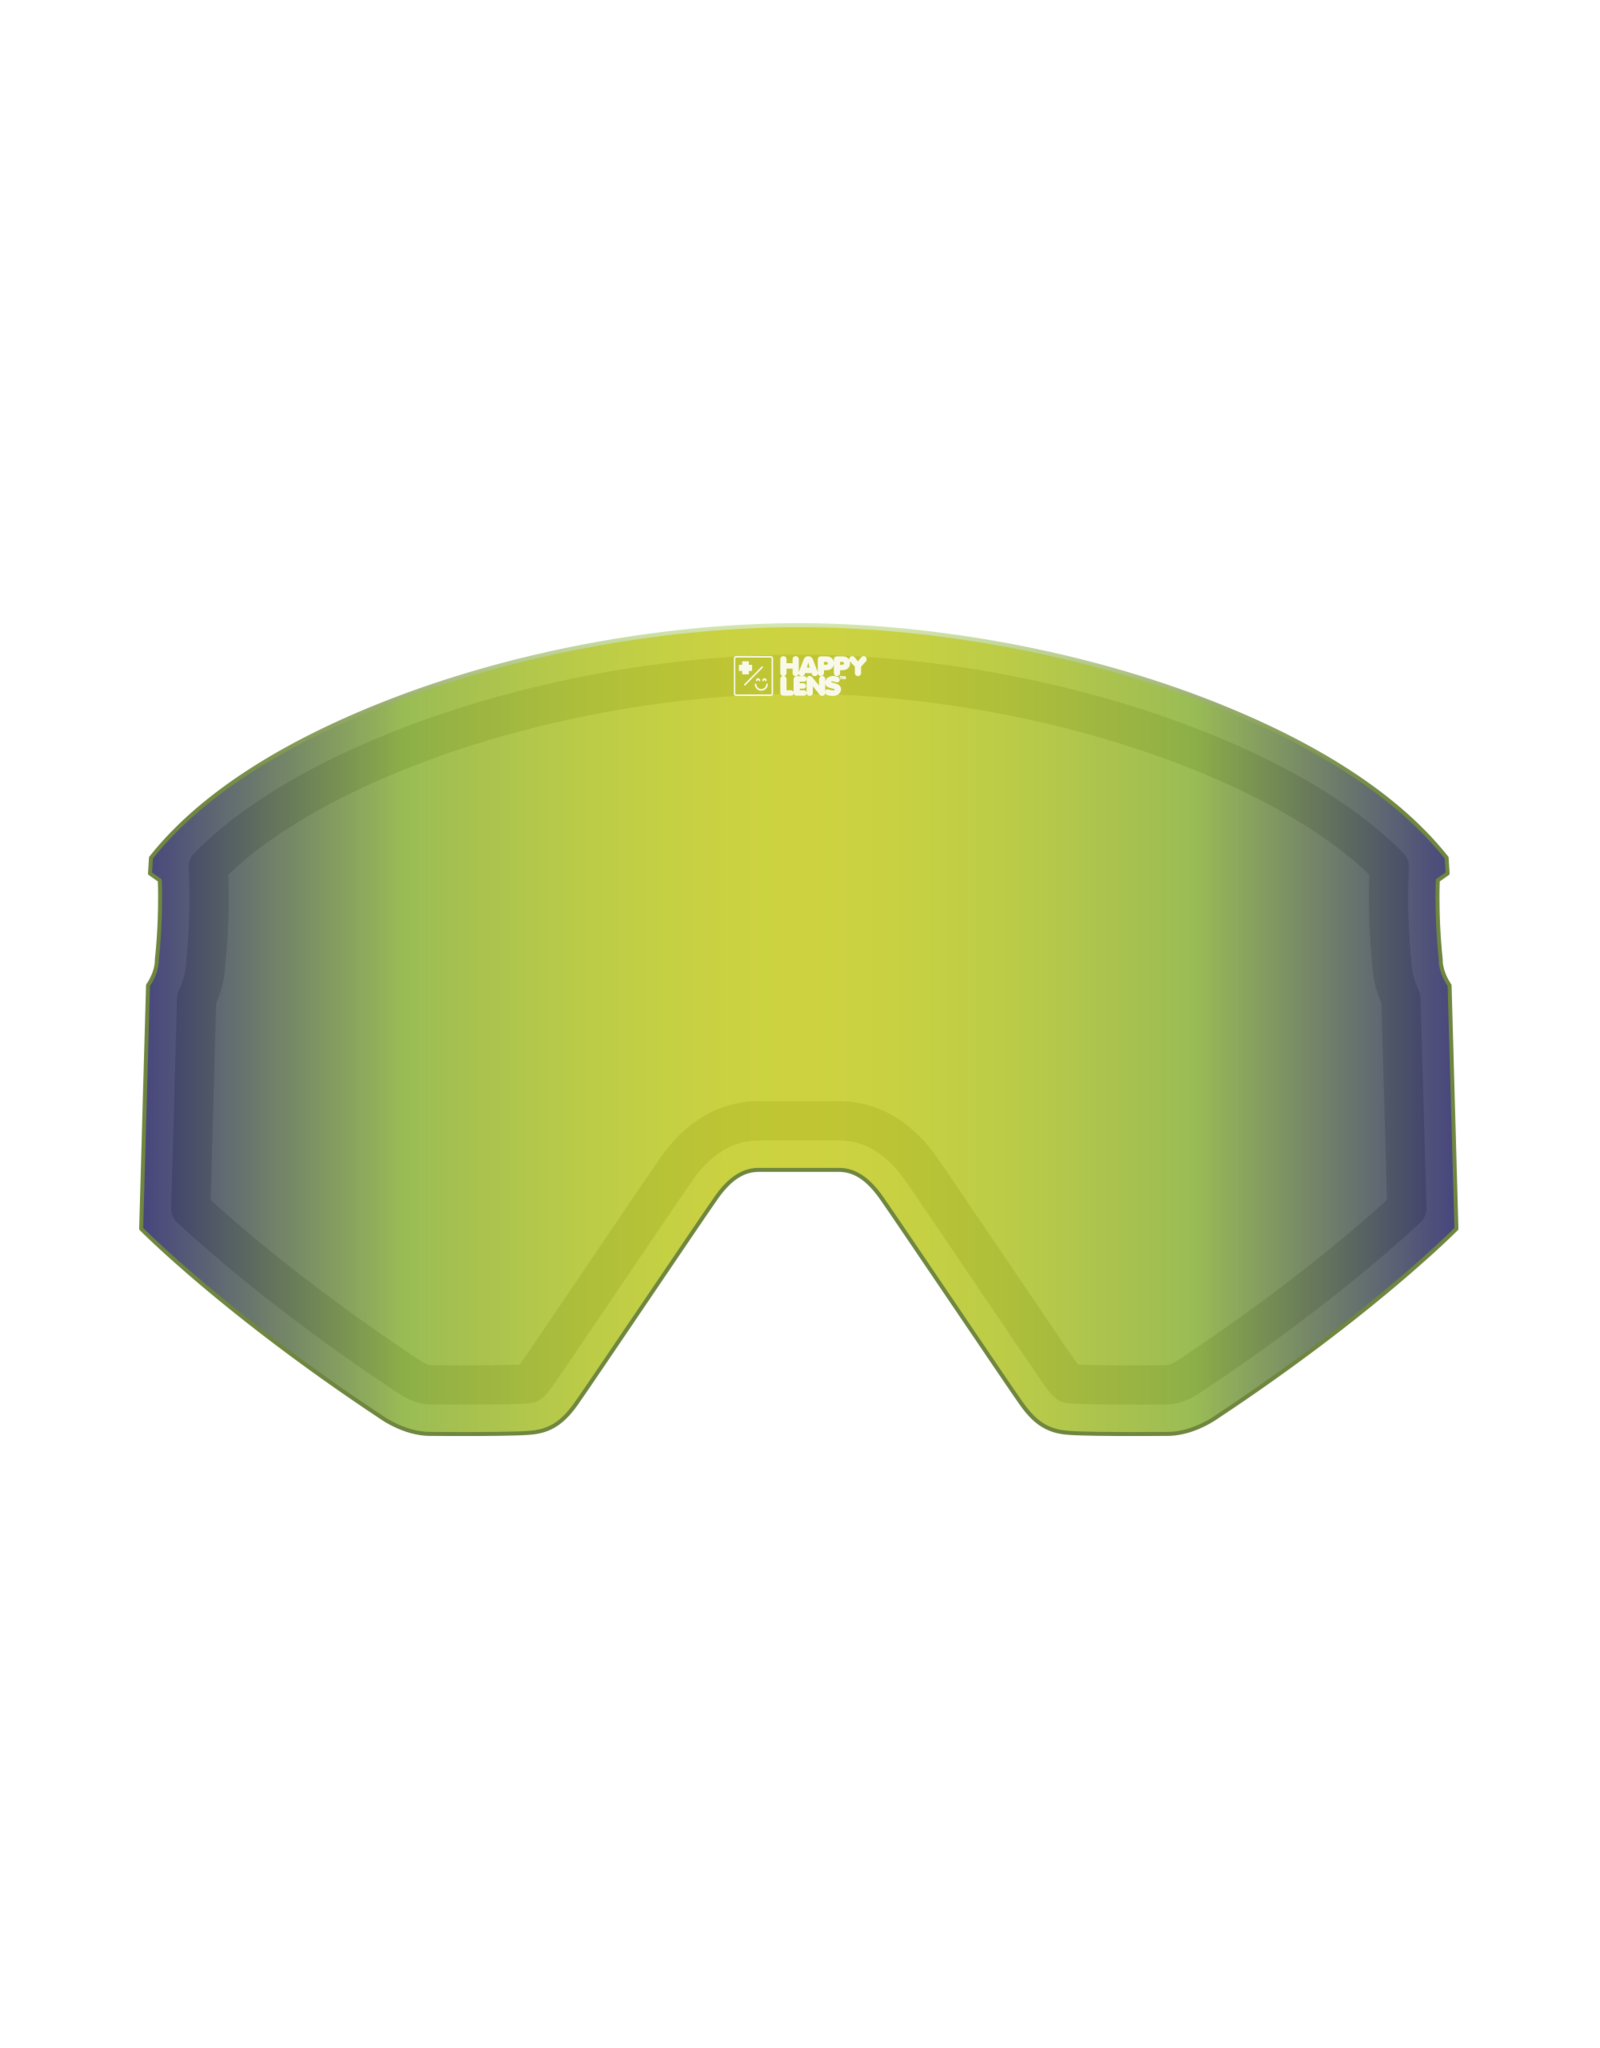 SPY Ace Black w/Happy Gray Green/Red Spectra and HD Plus LL Yellow/Green Spectra Mirror